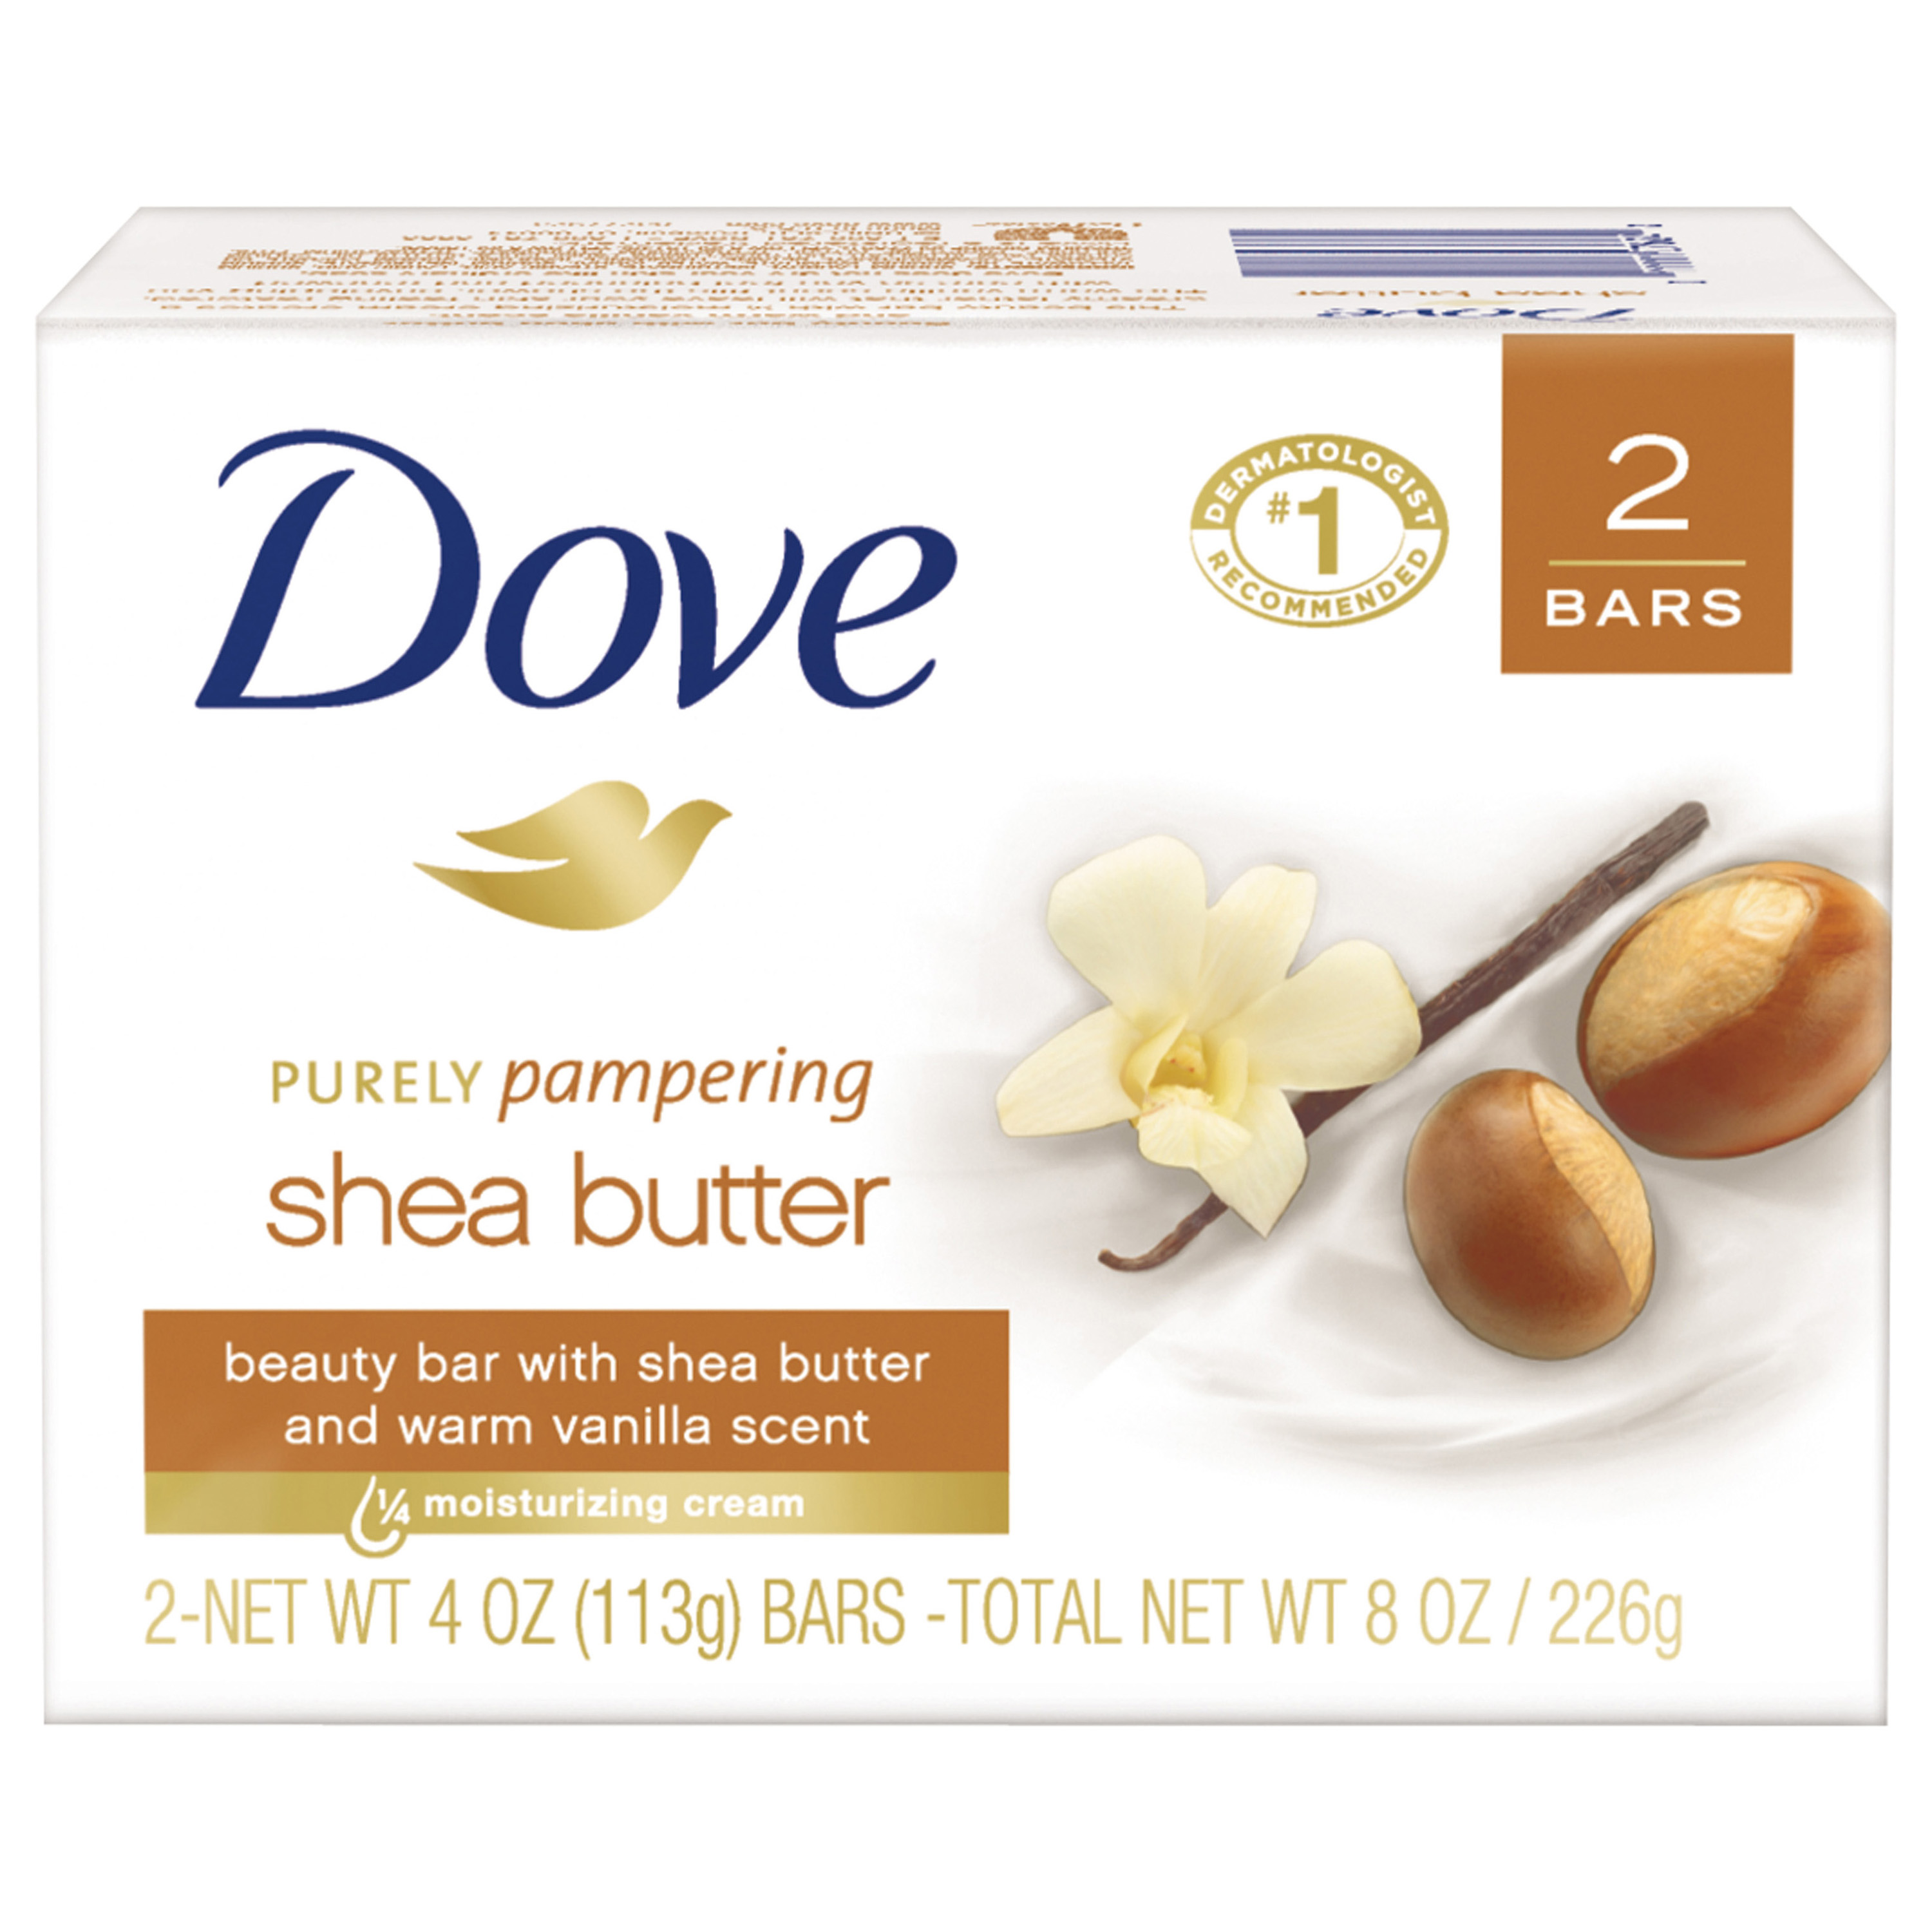 Dove Shea Butter Beauty Bar, 4 oz, 2 Bar